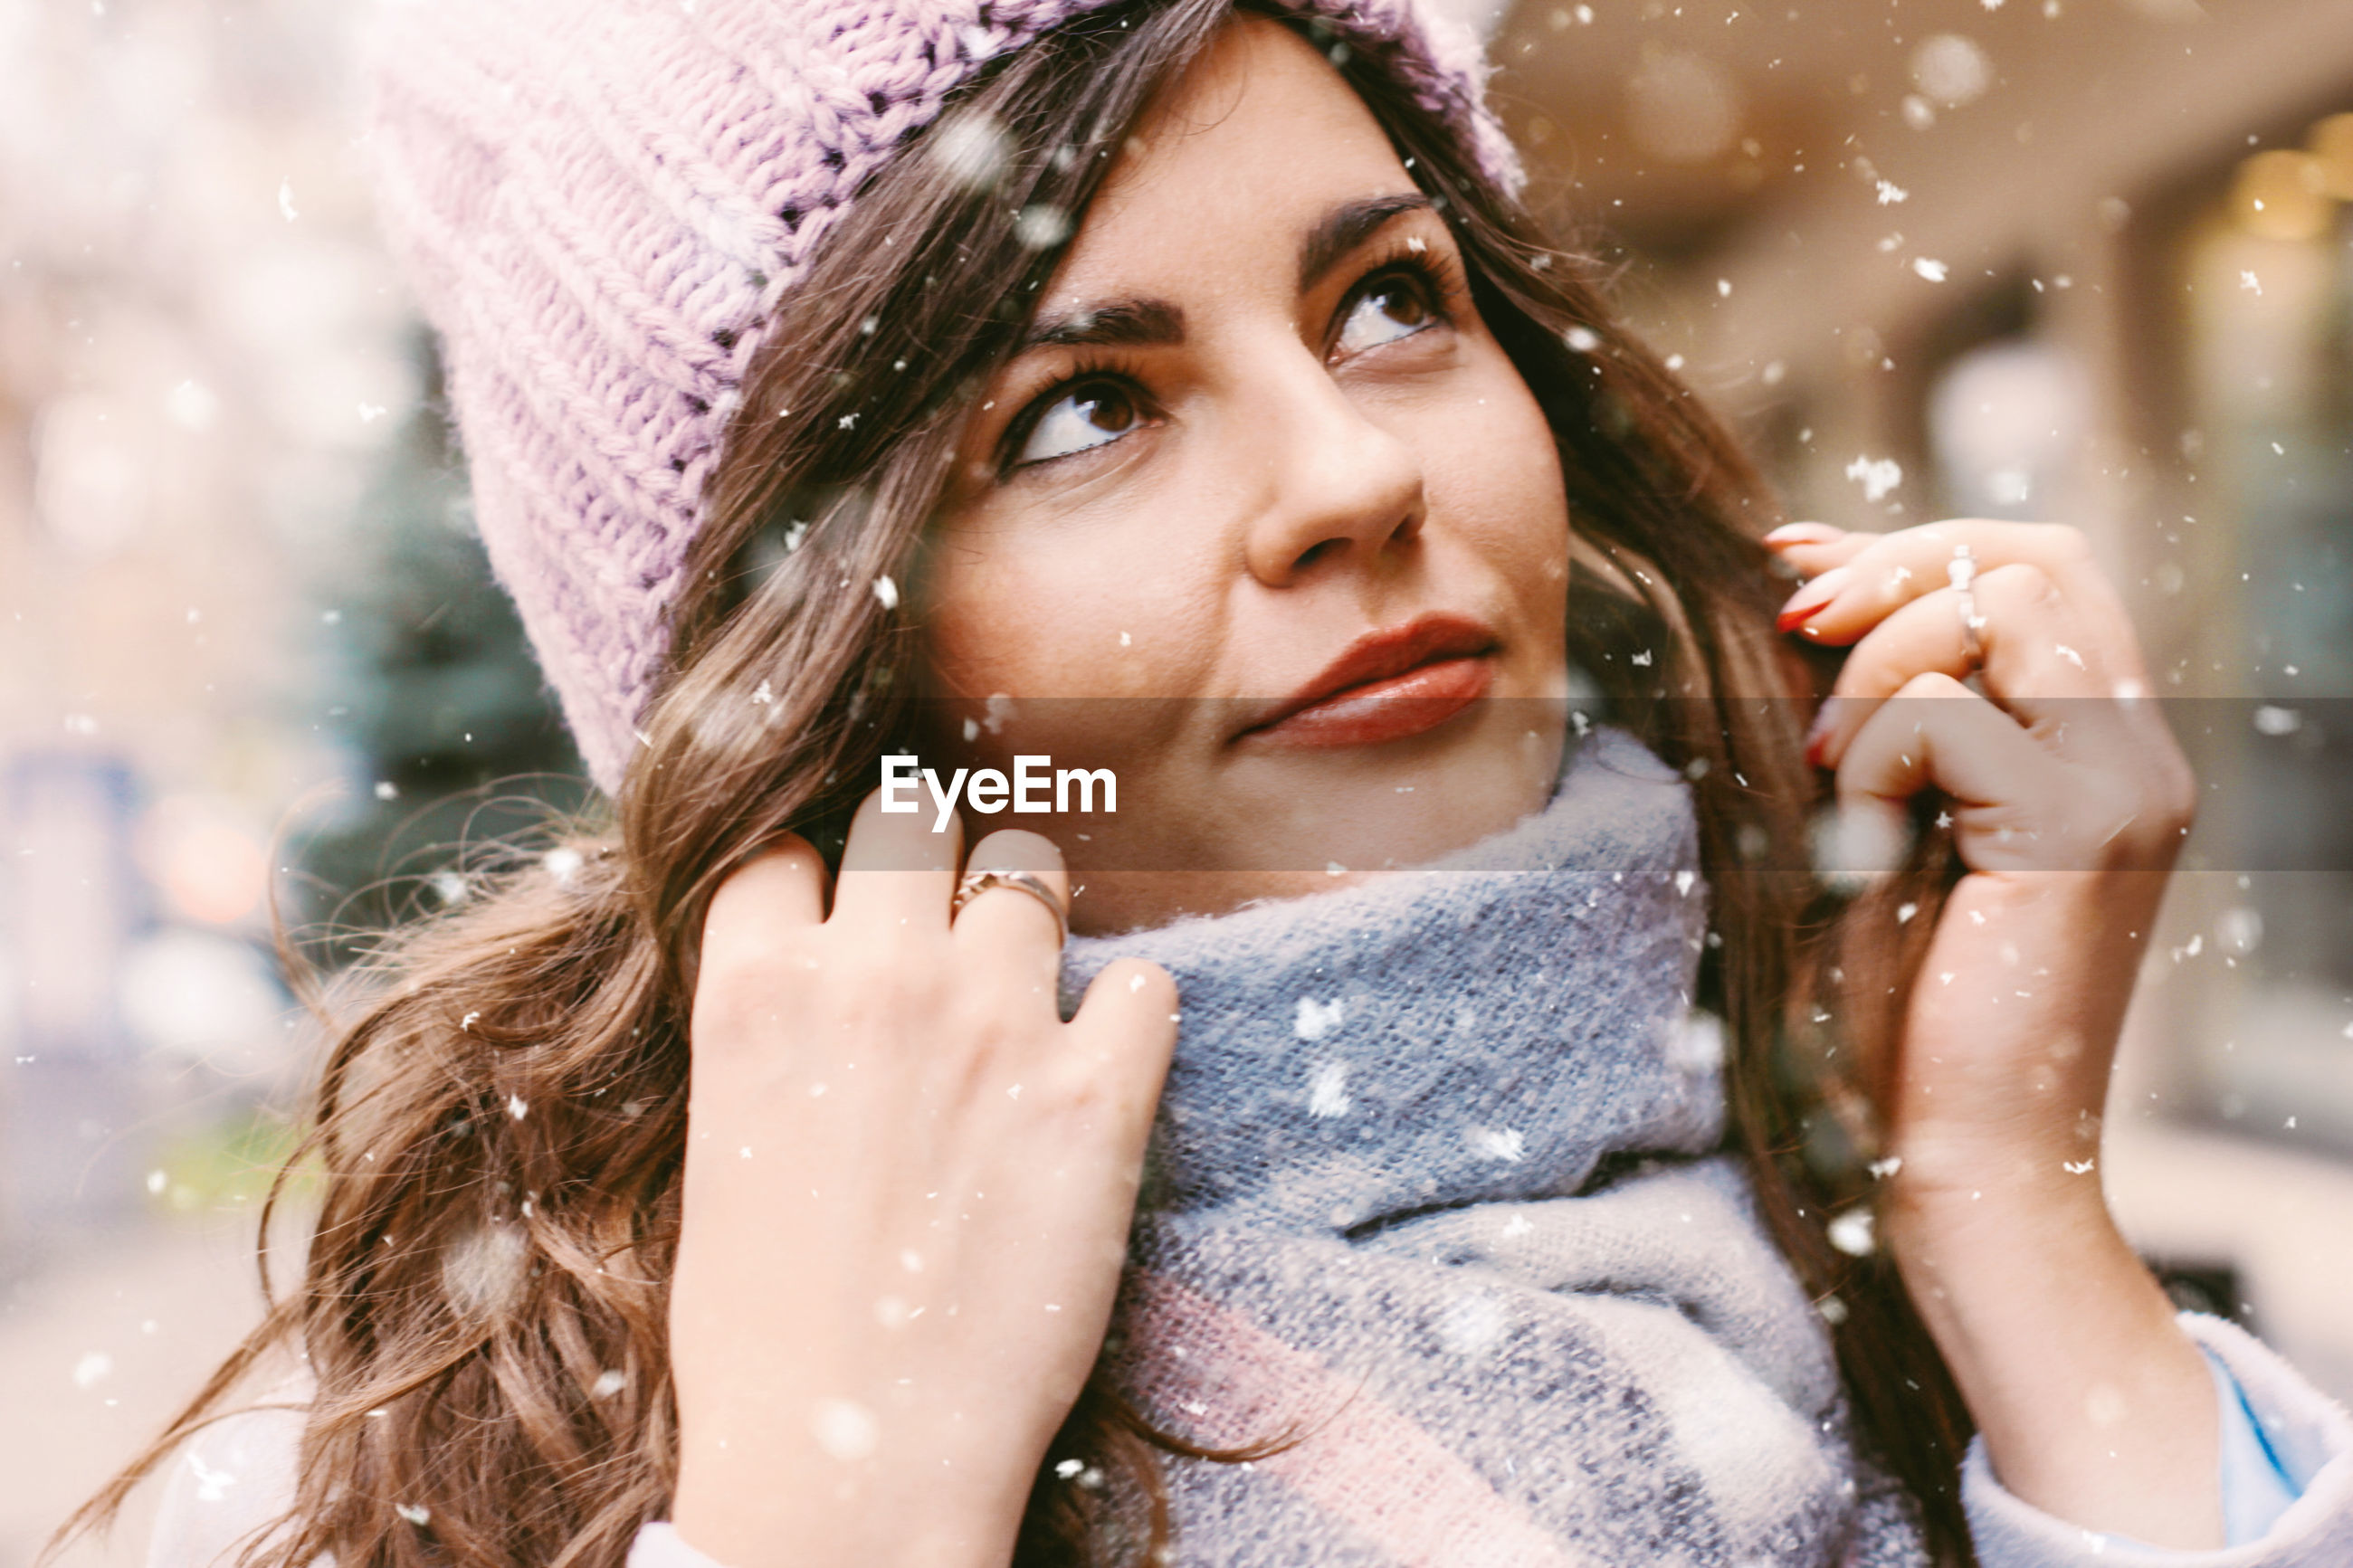 Close-up of young woman looking away while standing outdoors during snowfall